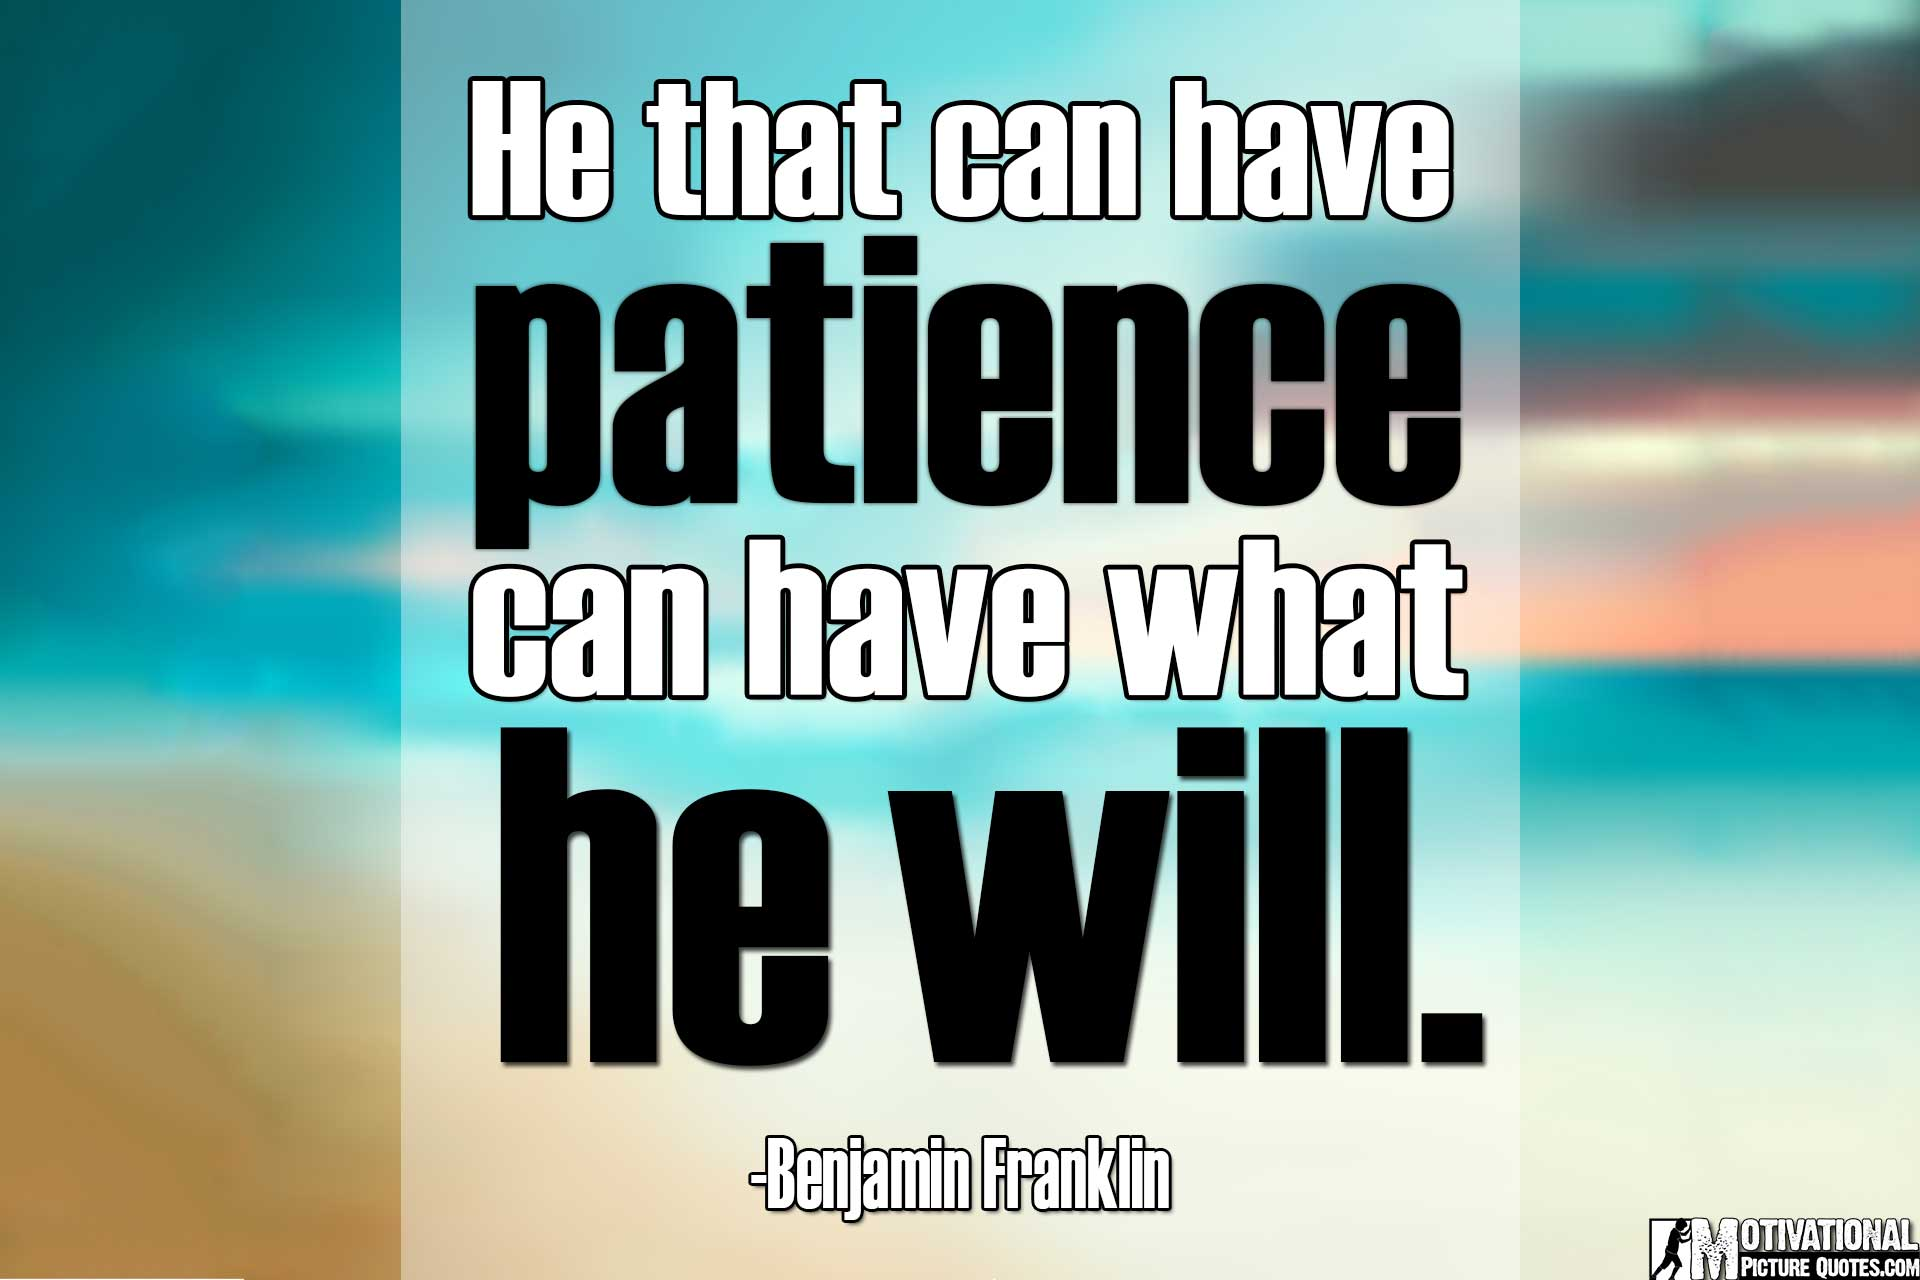 Patience Quotes he that can have patience can have what he will